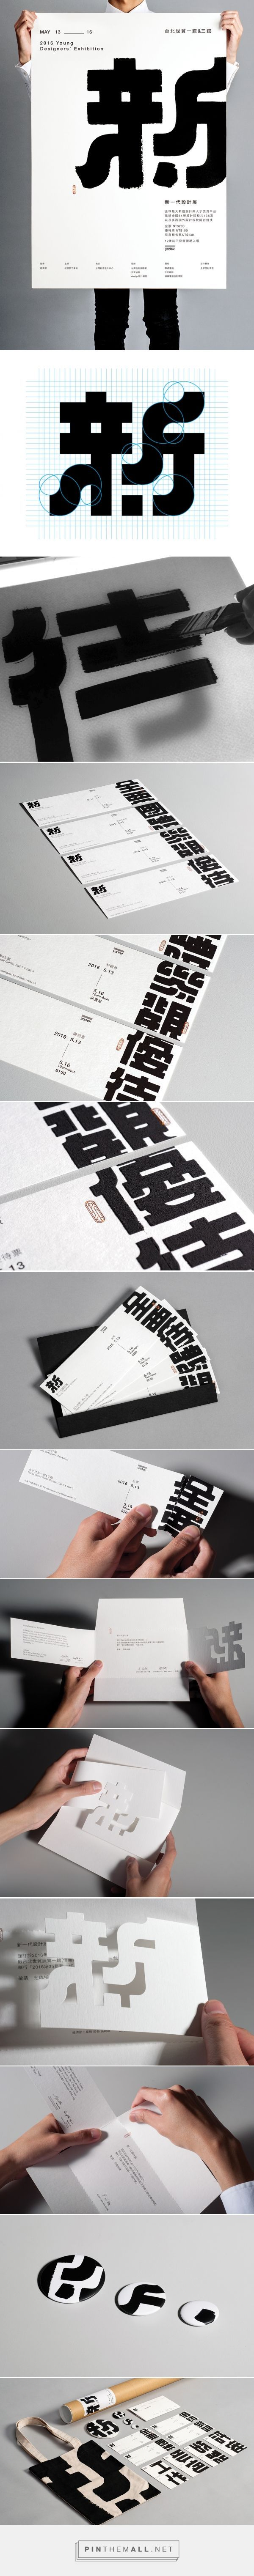 A Full Asian Style . Minimalism . Black and White . Identity Design . Branding Inspiration . Ideograms Ink Stamp .